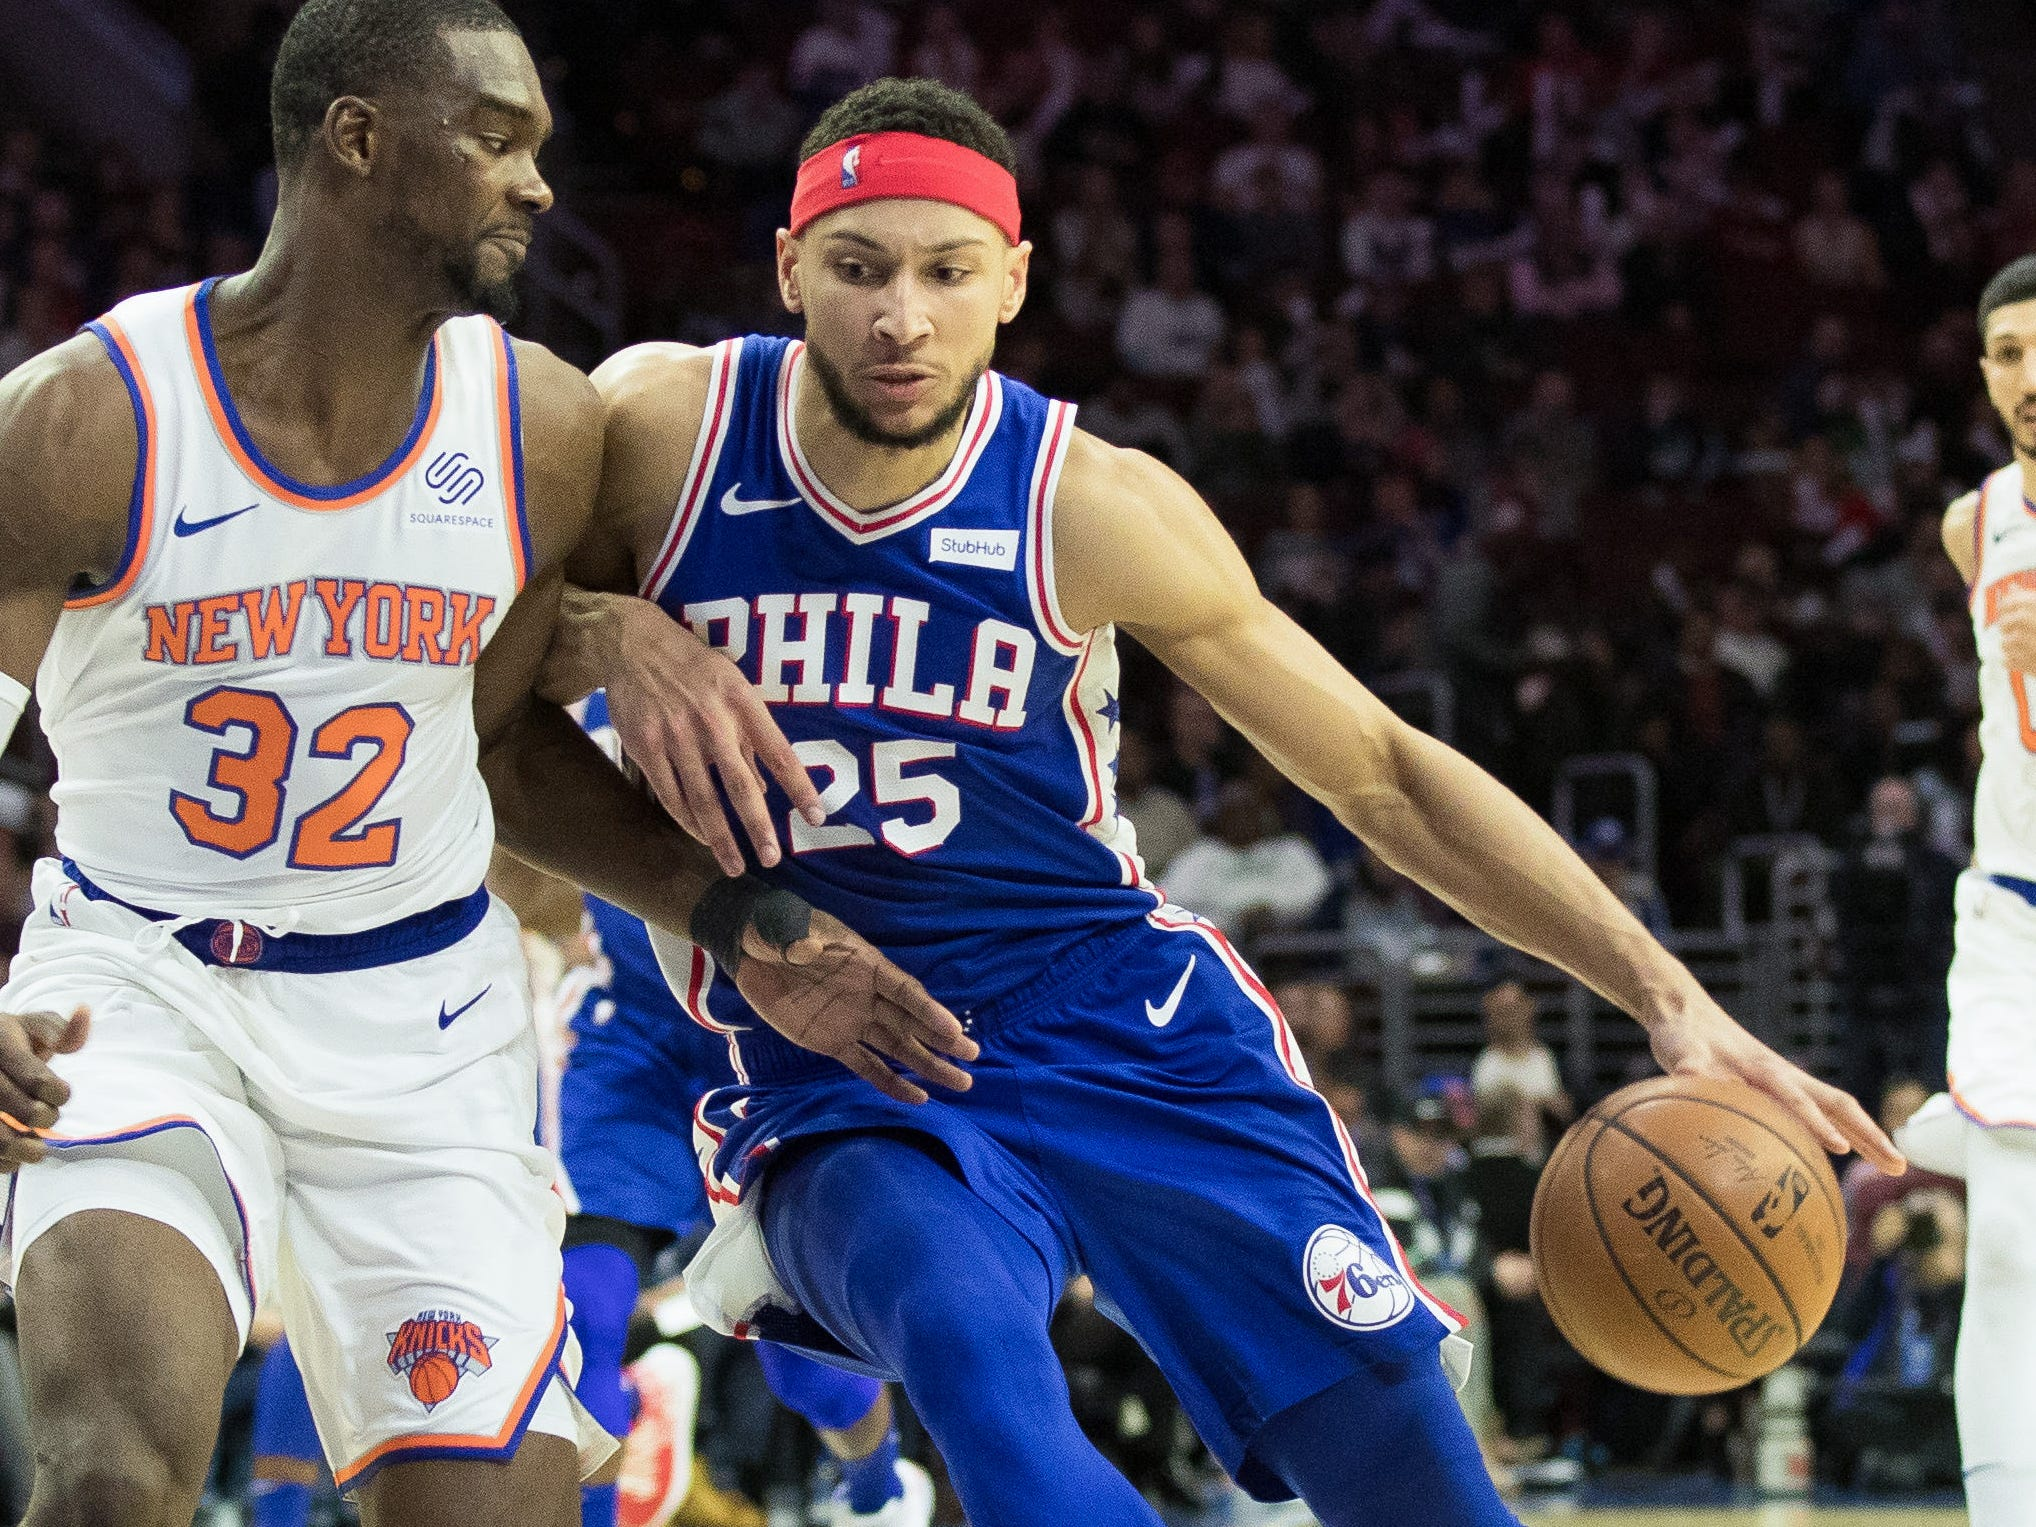 30. Ben Simmons, 76ers (Dec. 19): 13 points, 11 rebounds, 10 assists in 131-109 win over Knicks (fourth of season).